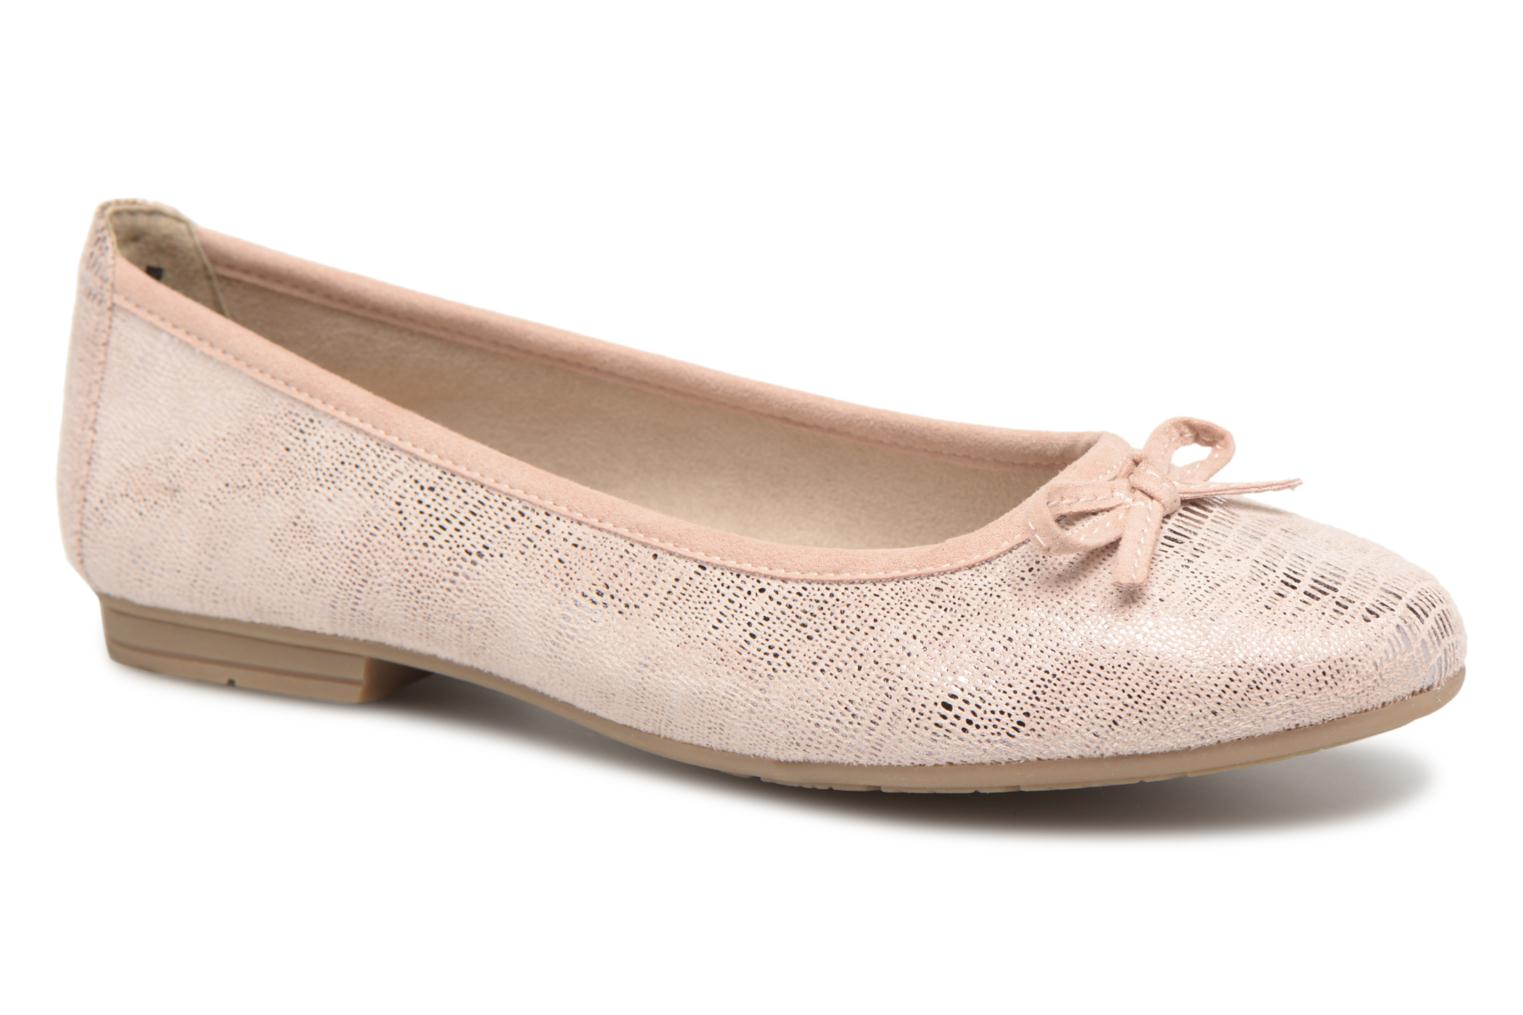 Aciego - Ballerines Pour Dames / Chaussures Roses Jana